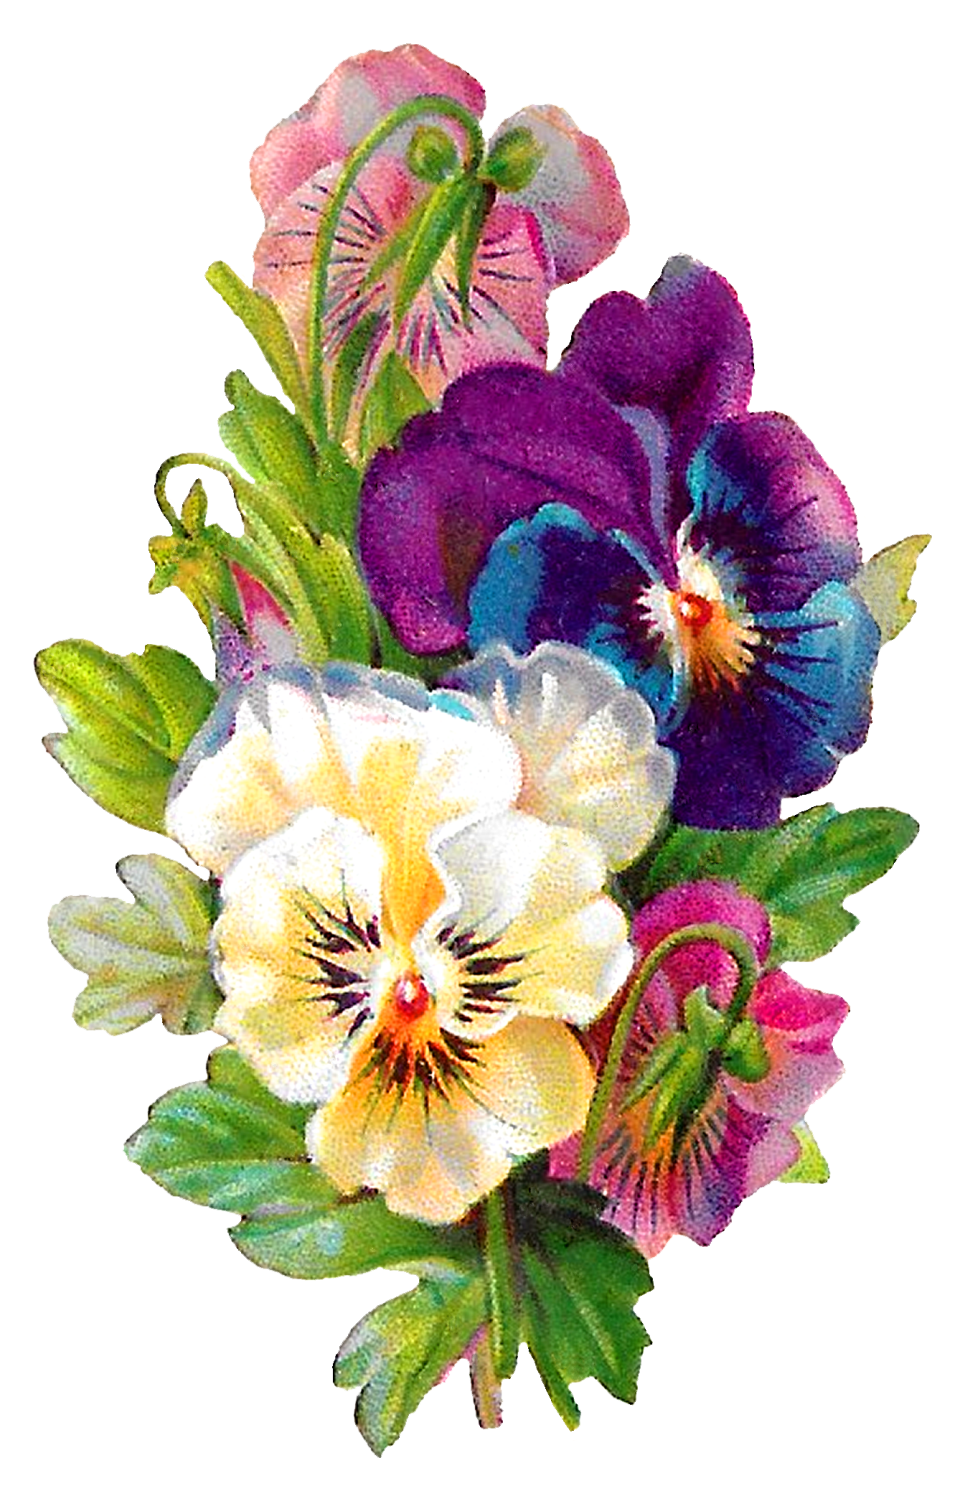 Pansy flower clipart banner royalty free library Antique Images: Wildflower Art Pansy Flower Clipart Antique ... banner royalty free library